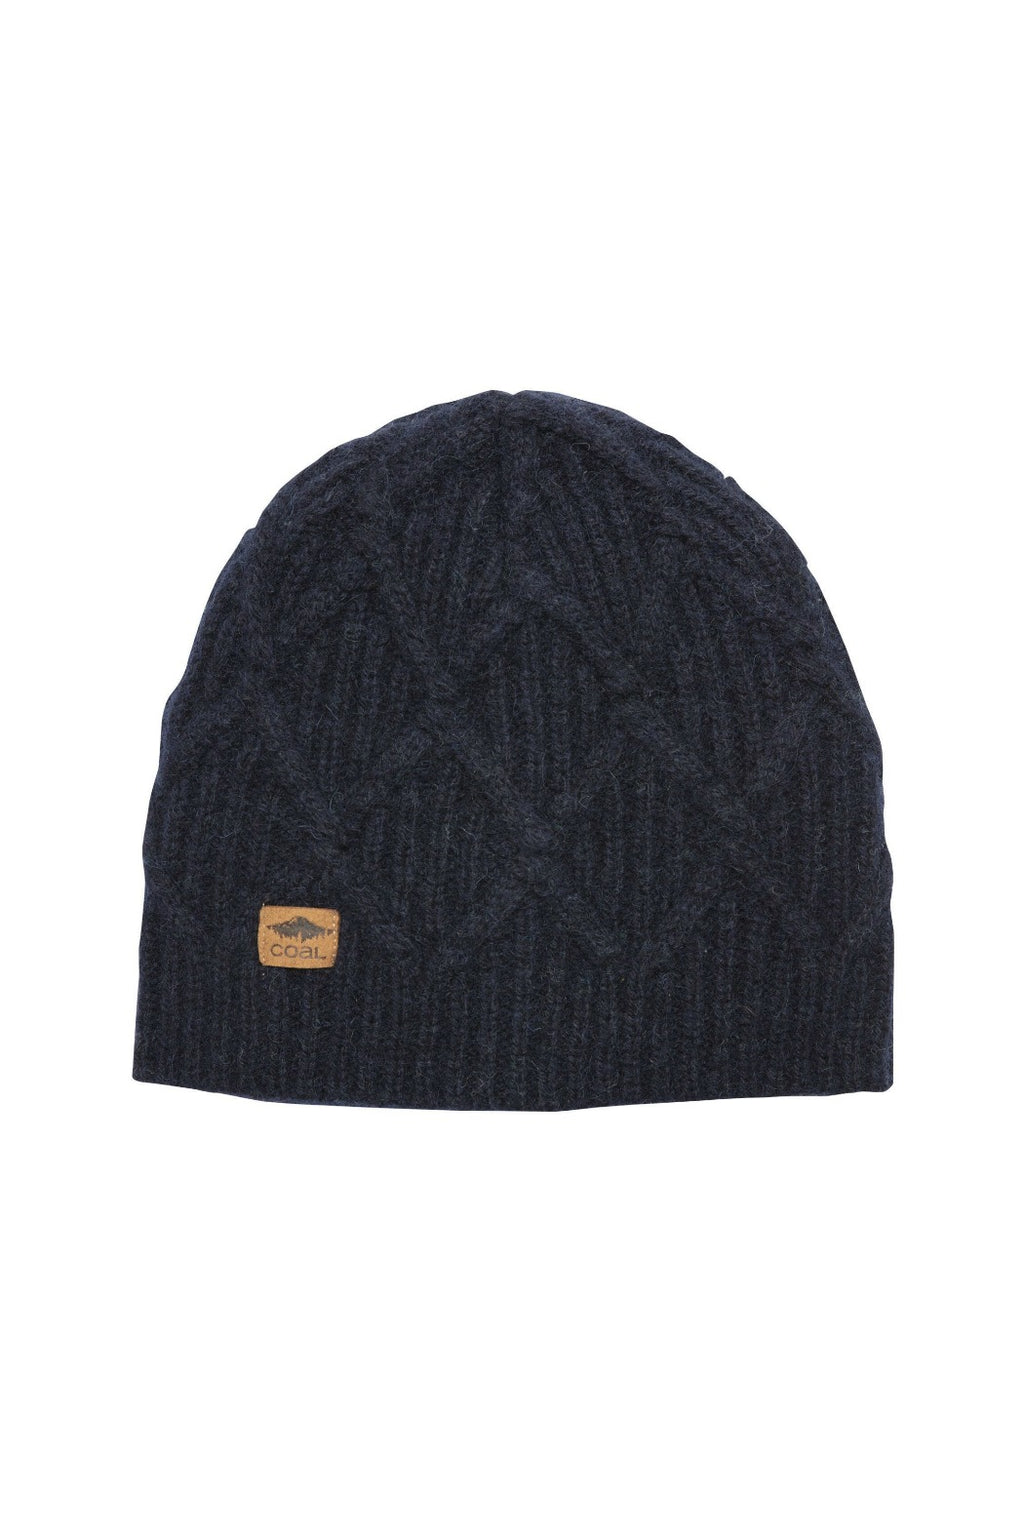 Coal Yukon Cable Knit Beanie - Navy